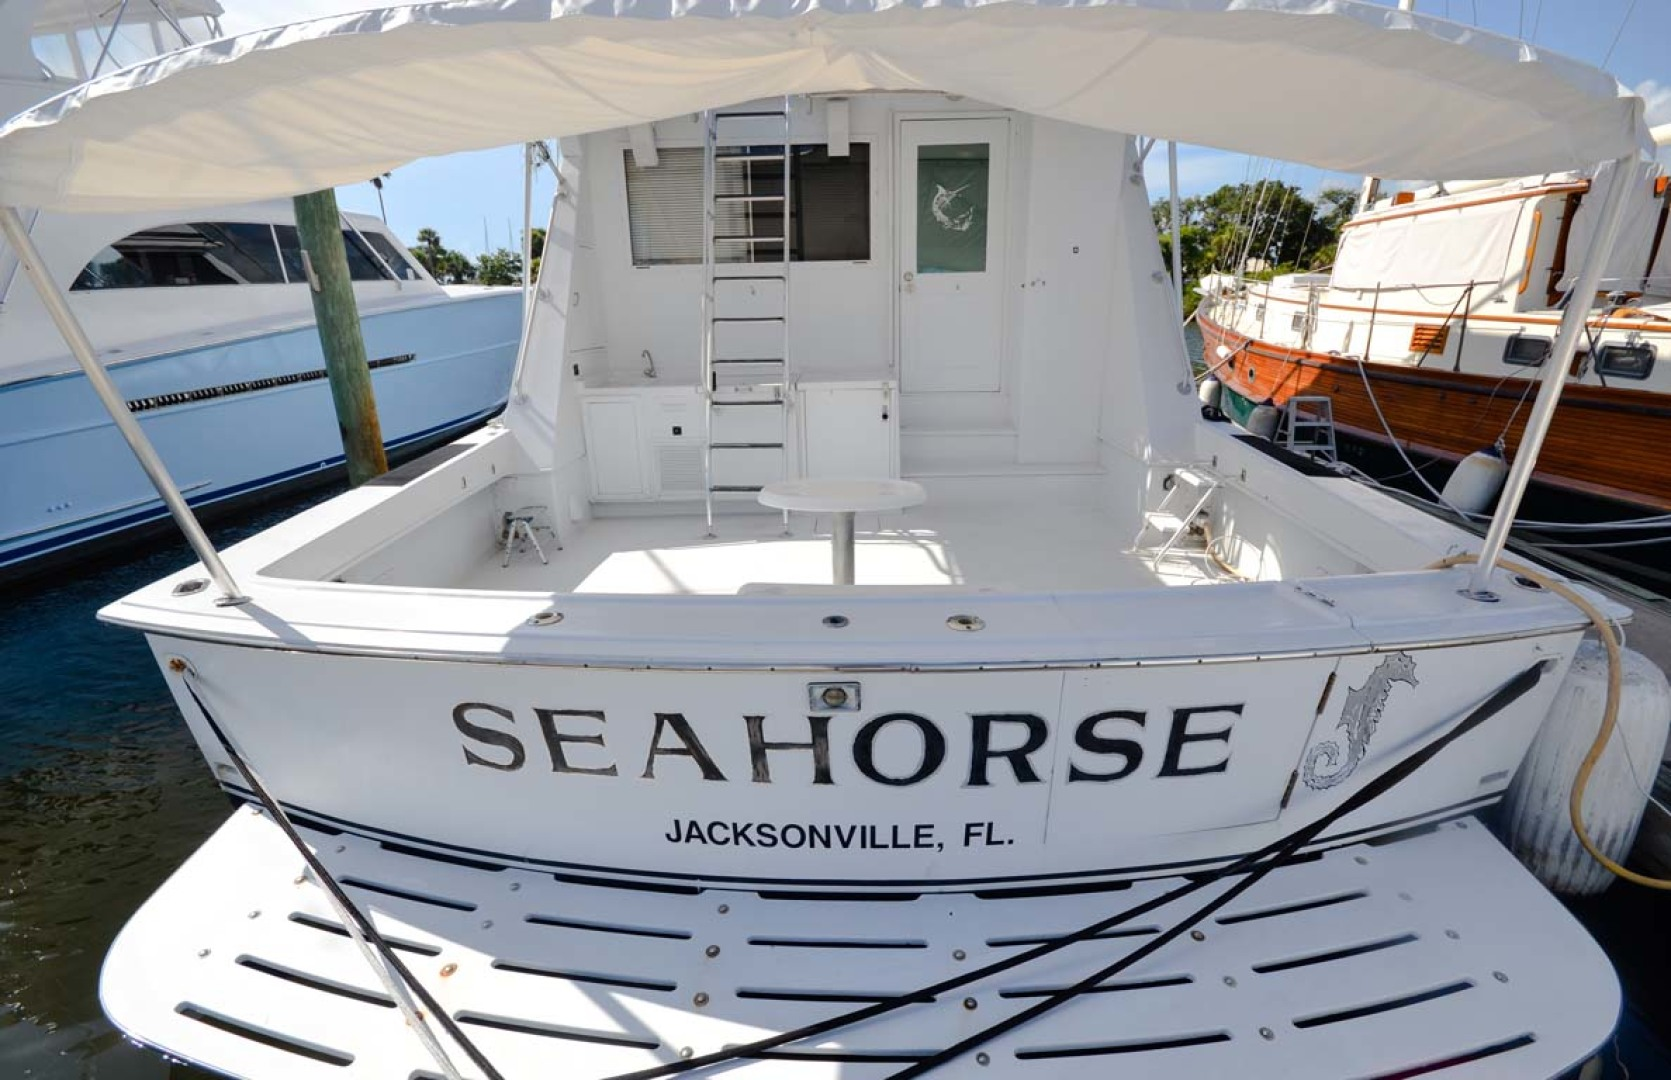 Hatteras-60 Flybridge 1979-Sea Horse Daytona Beach-Florida-United States-Stern View-1183212 | Thumbnail